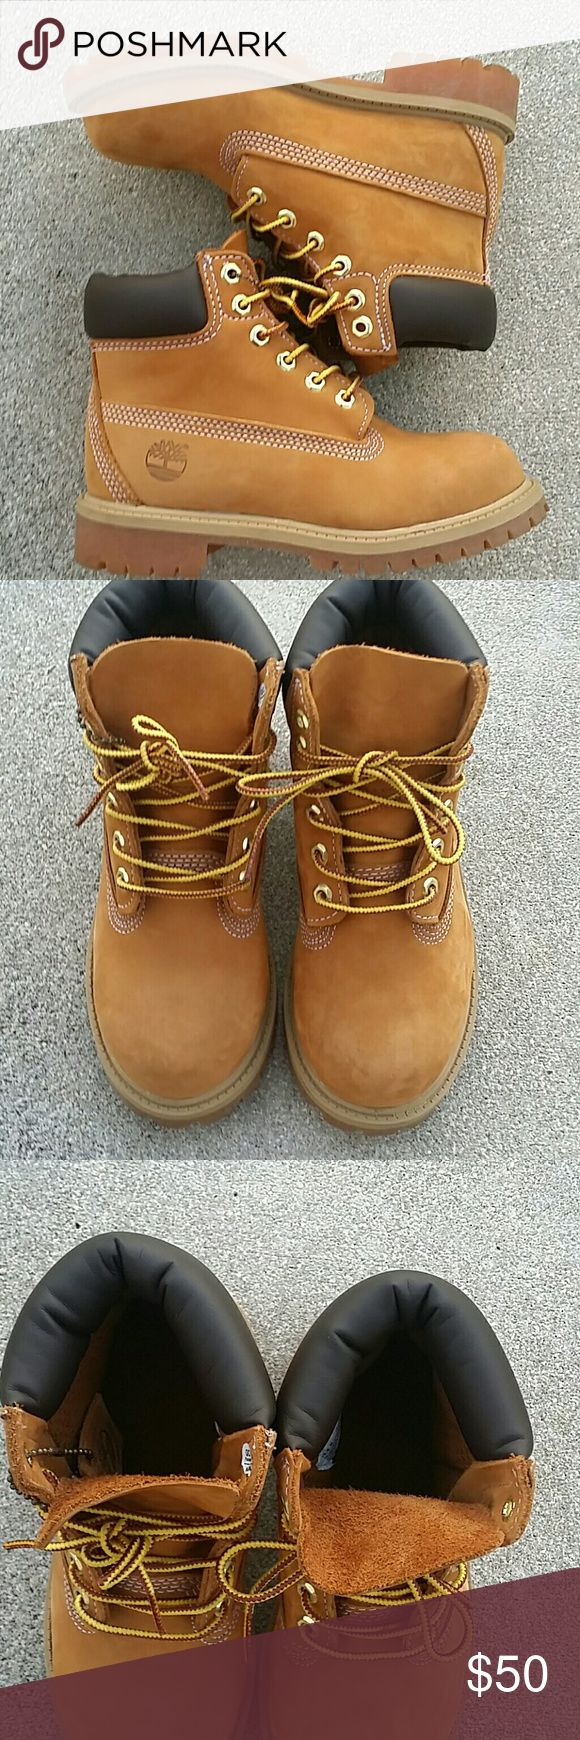 Boy's Timberland Boots Boy's Timberland Boots size 13.5 M Timberland Shoes